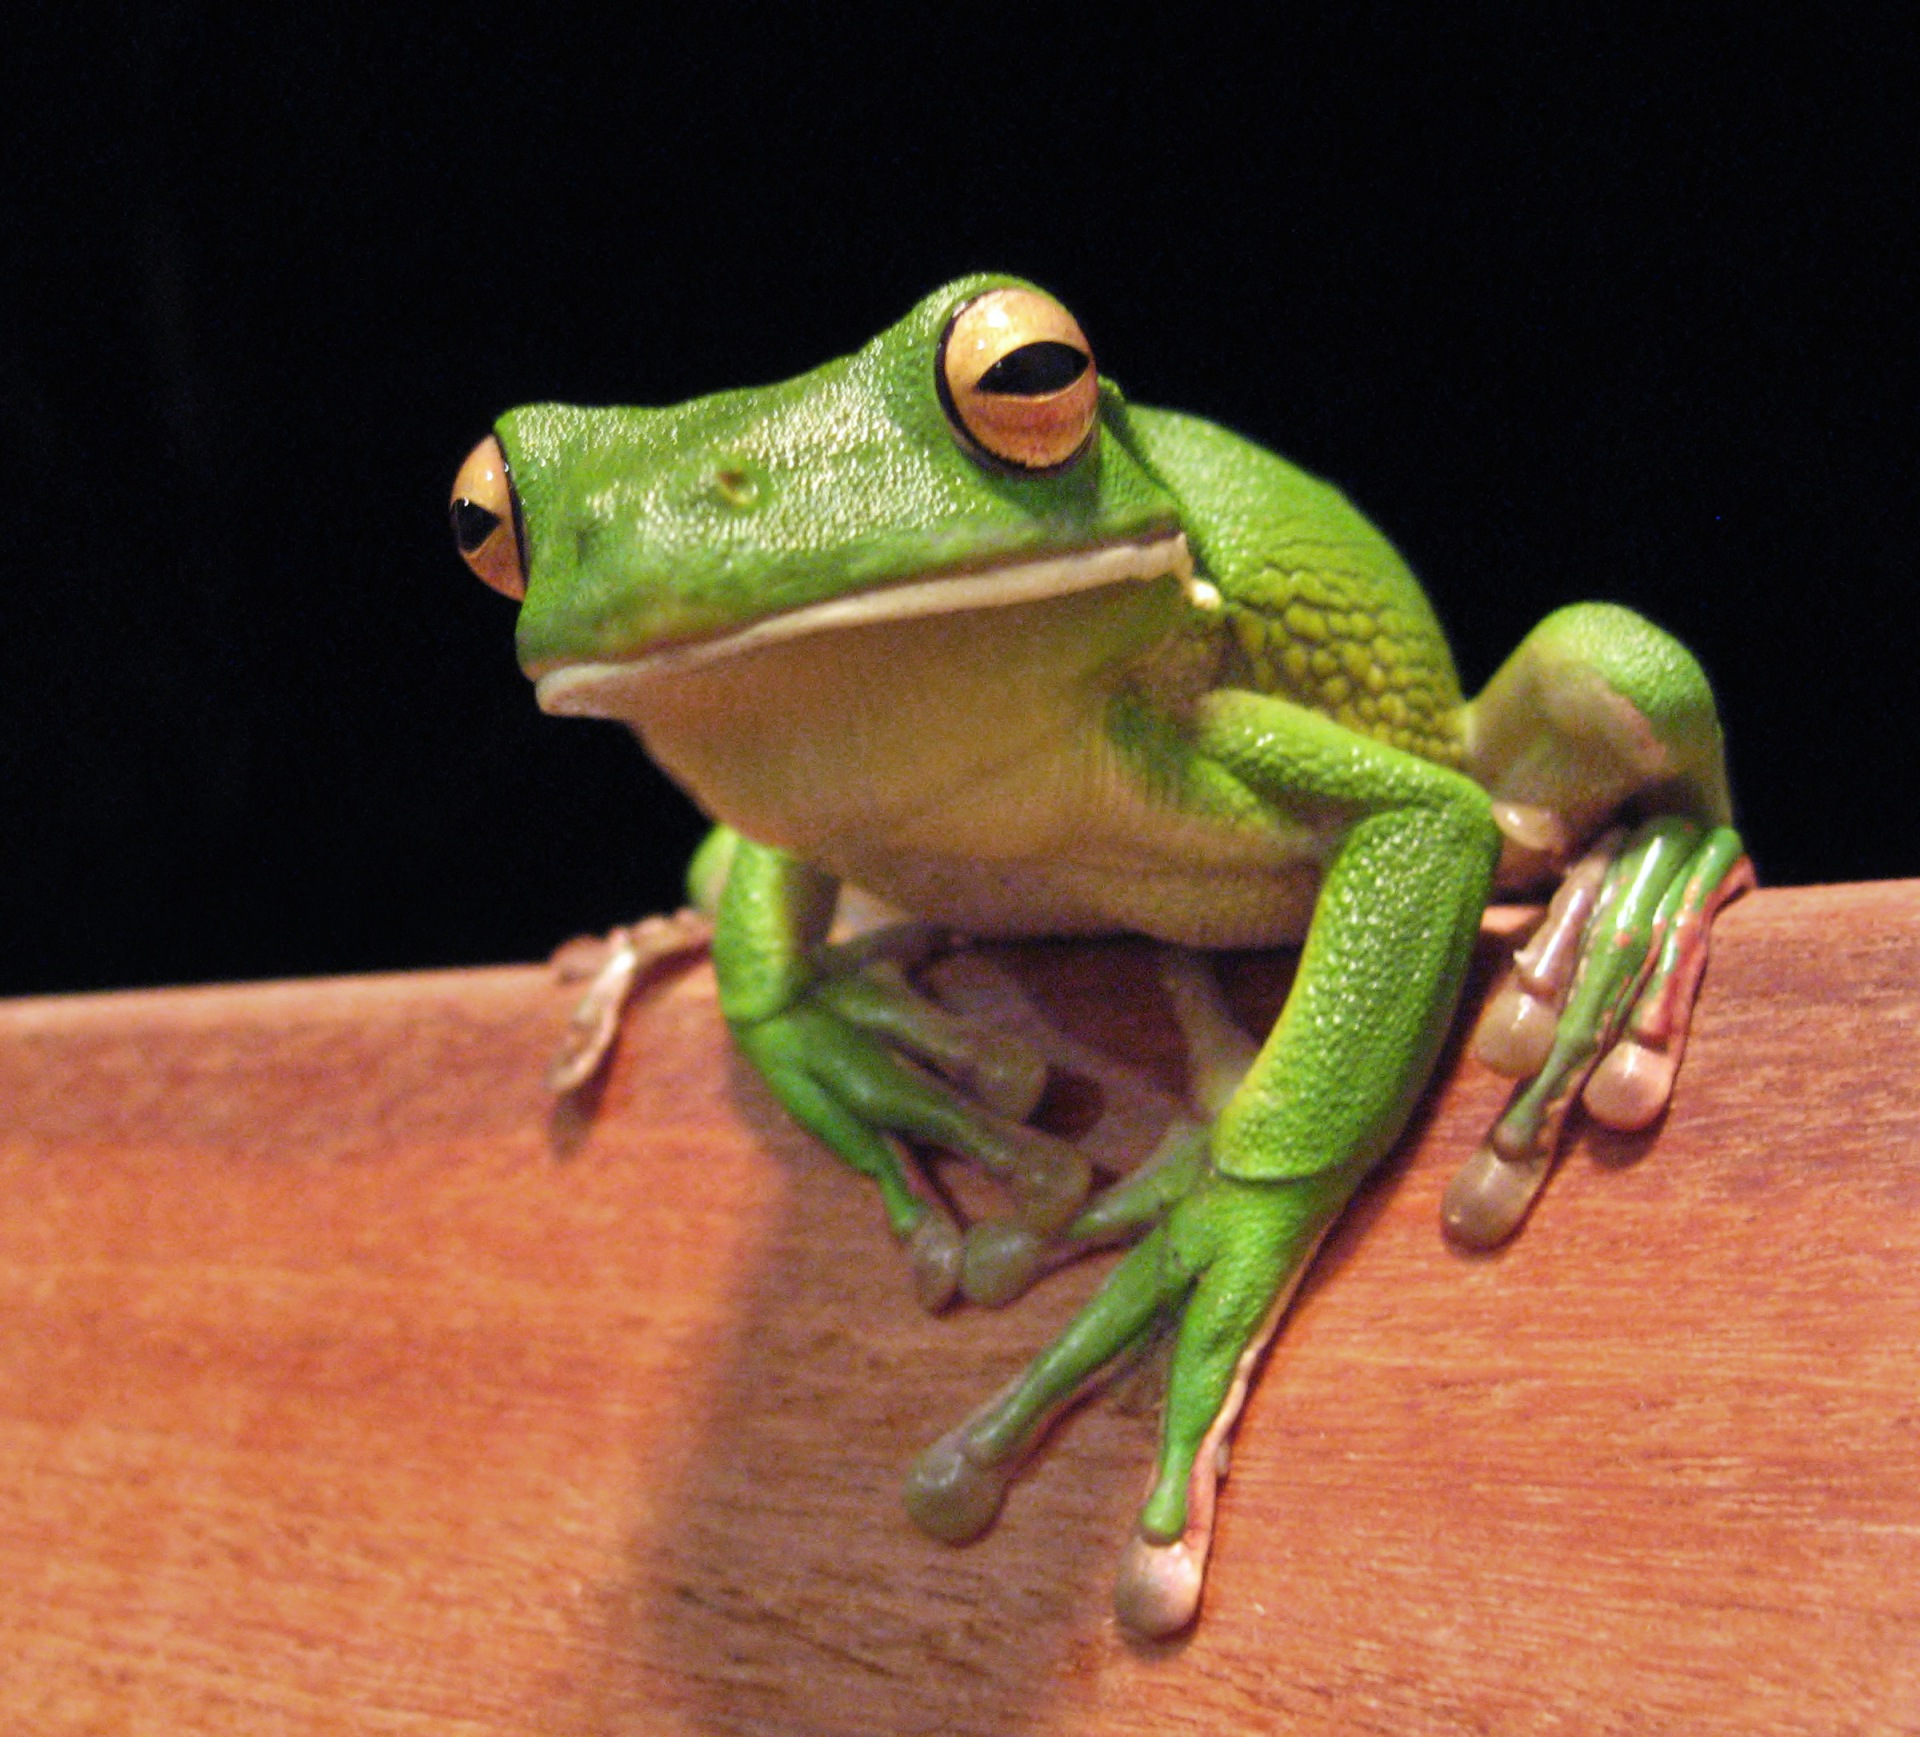 White_lipped_tree_frog_cairns_jan_8_2006 (1)